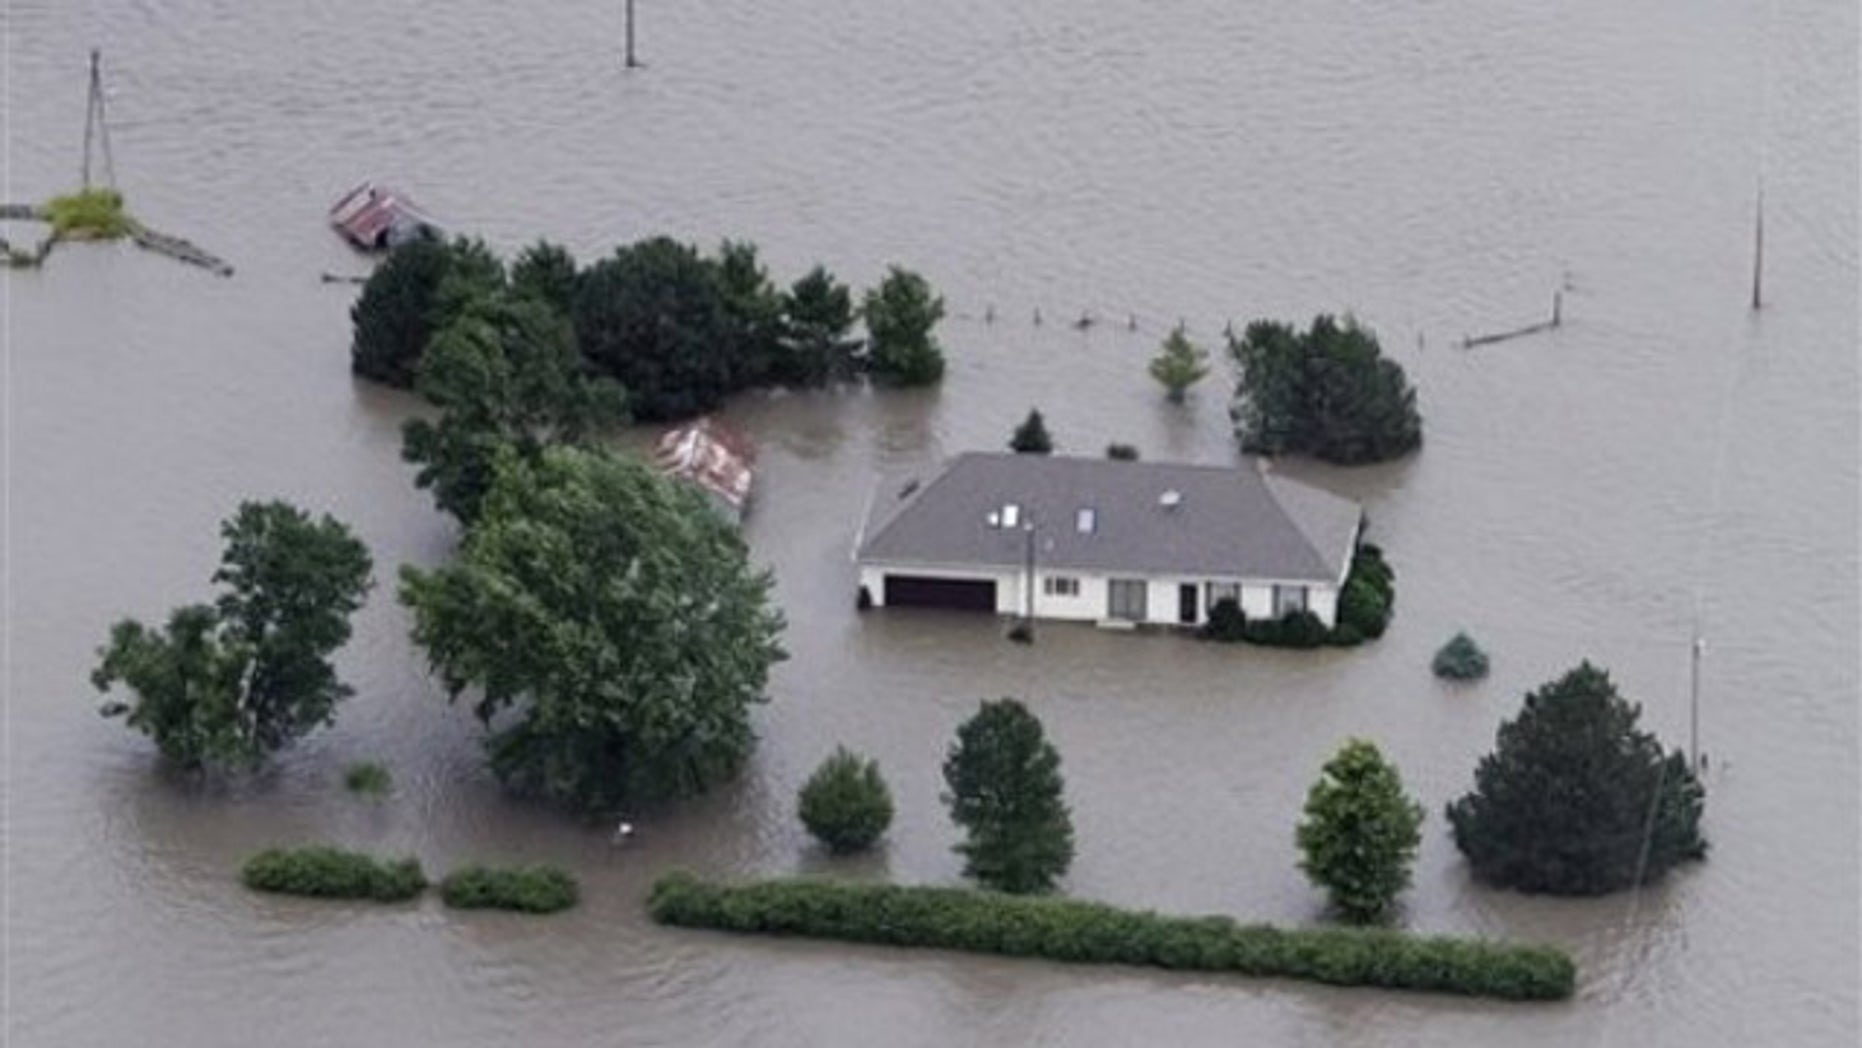 June 13: A home is engulfed by flood water in Hamburg, Iowa. The rising Missouri River has ruptured two levees in northwest Missouri, sending torrents of floodwaters over rural farmland toward the Iowa town of Hamburg and the Missouri resort town of Big Lake.